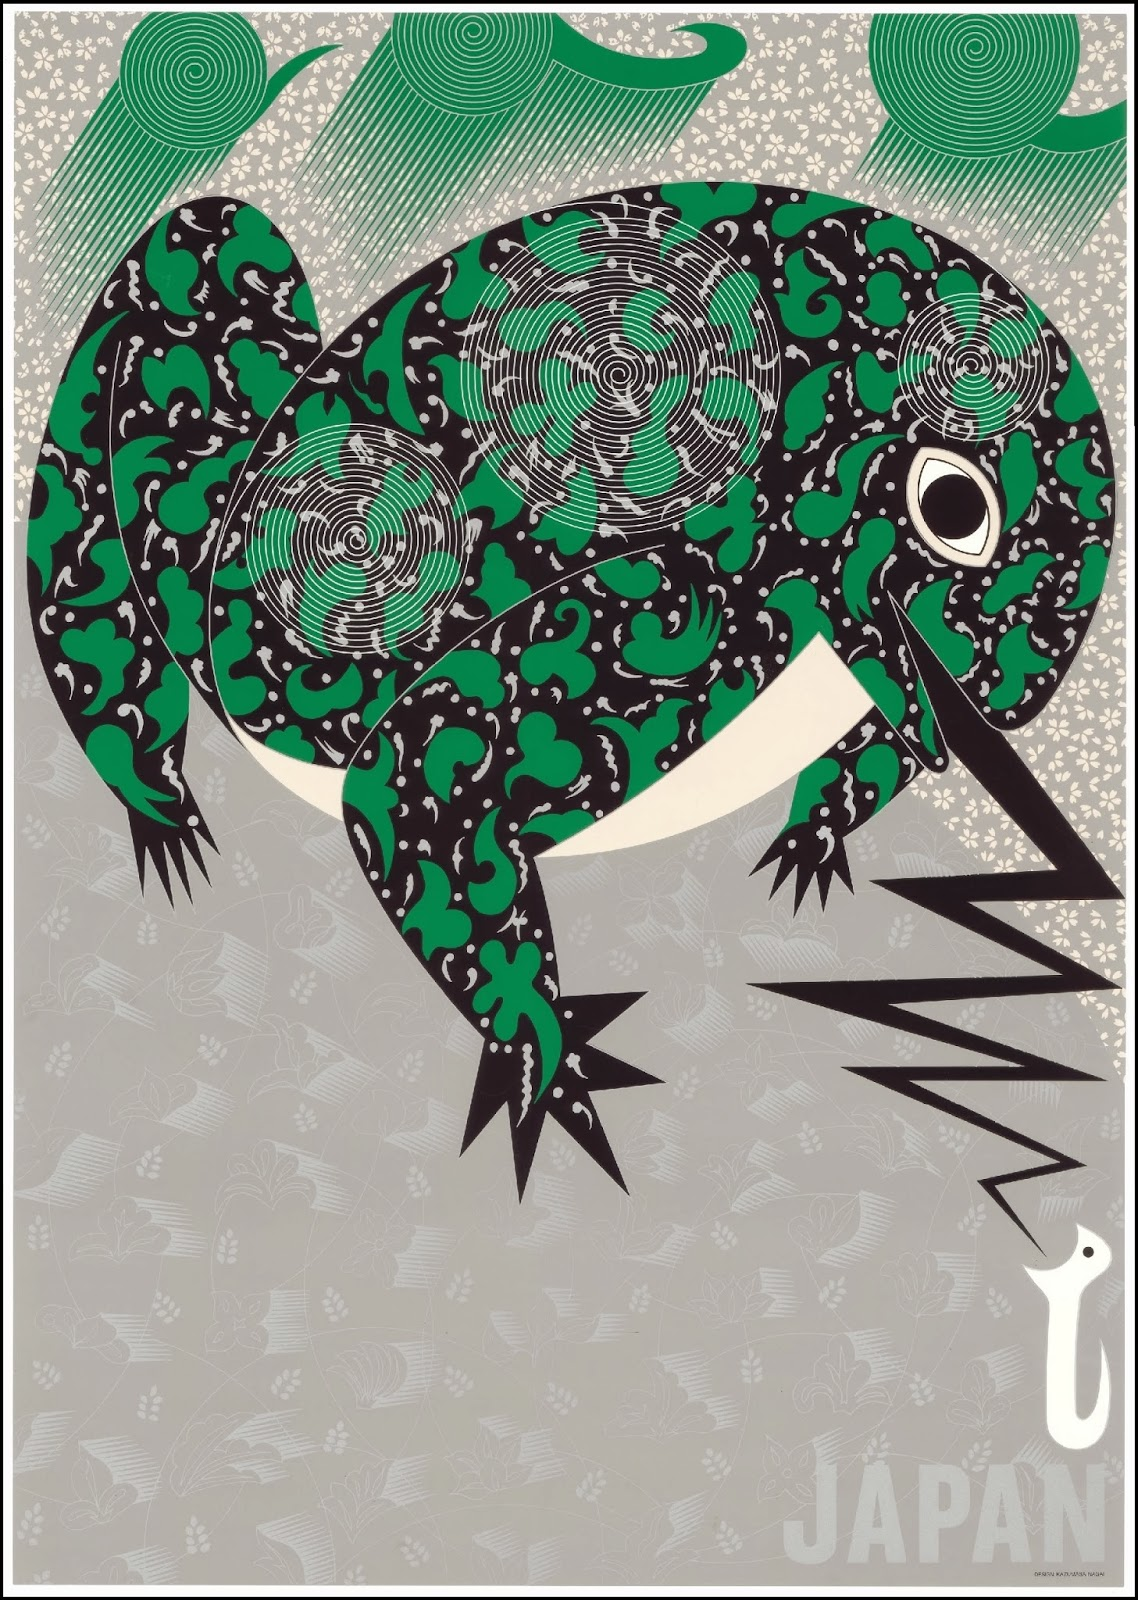 japanese poster of semi-stylised patterned green frog with tongue out to catch an insect